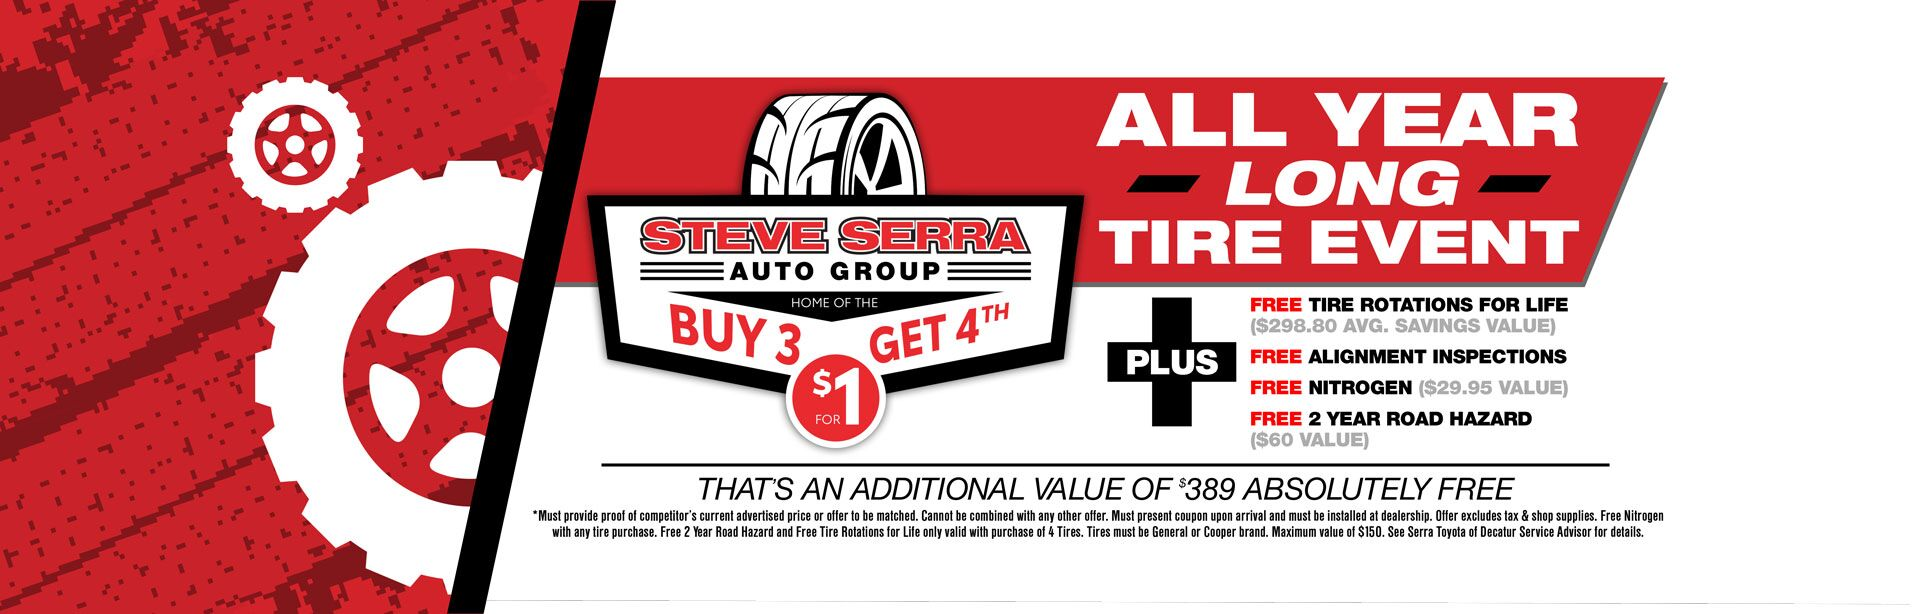 Al Serra Used >> Toyota Dealership Decatur Al Used Cars Serra Toyota Of Decatur